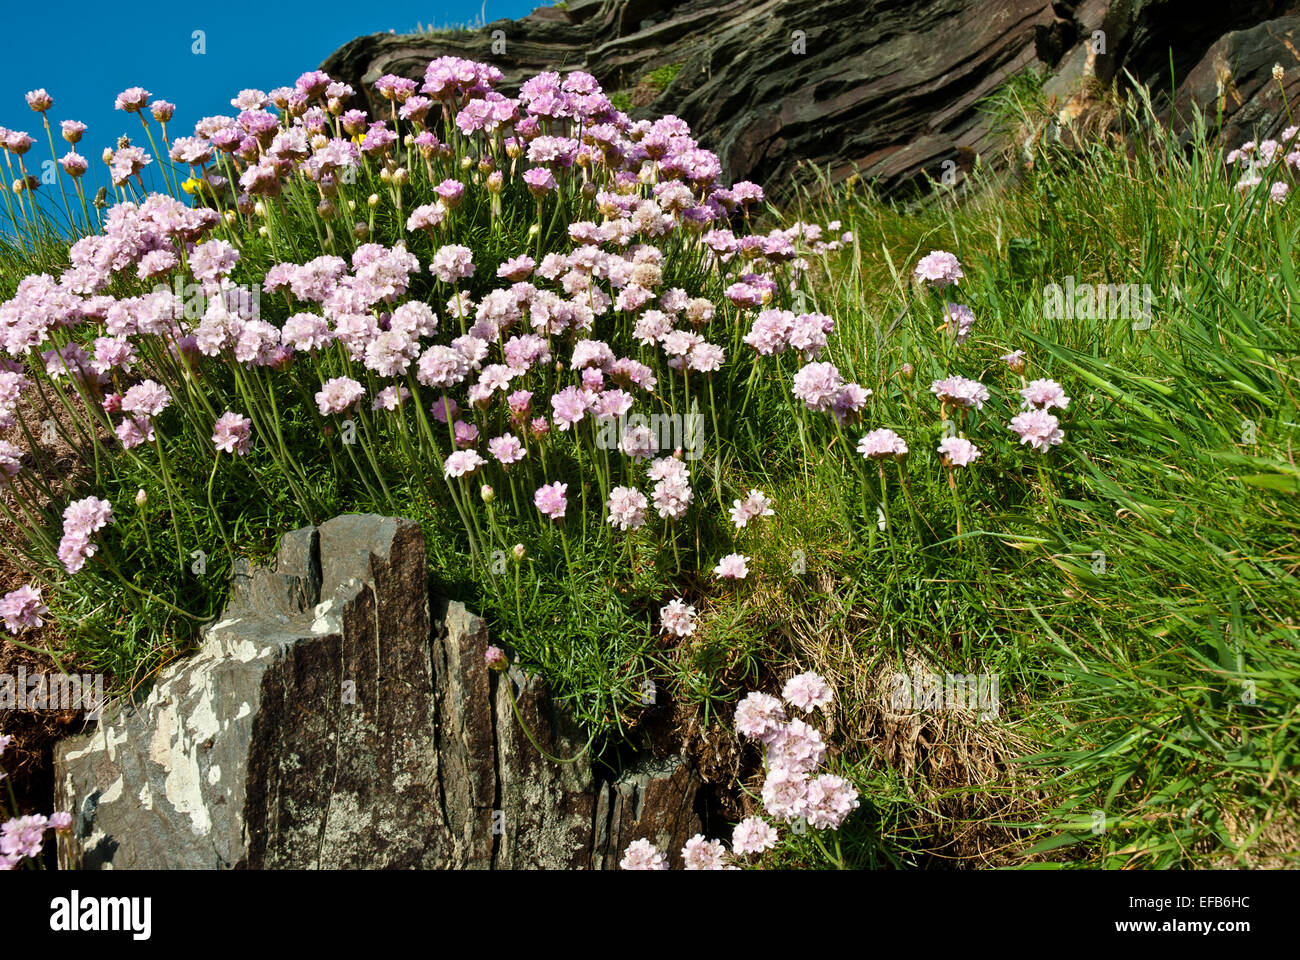 Sea pinks stock photos sea pinks stock images alamy a cluster of sea pinks on a cliff coastal plant of summer aka thrift mightylinksfo Image collections